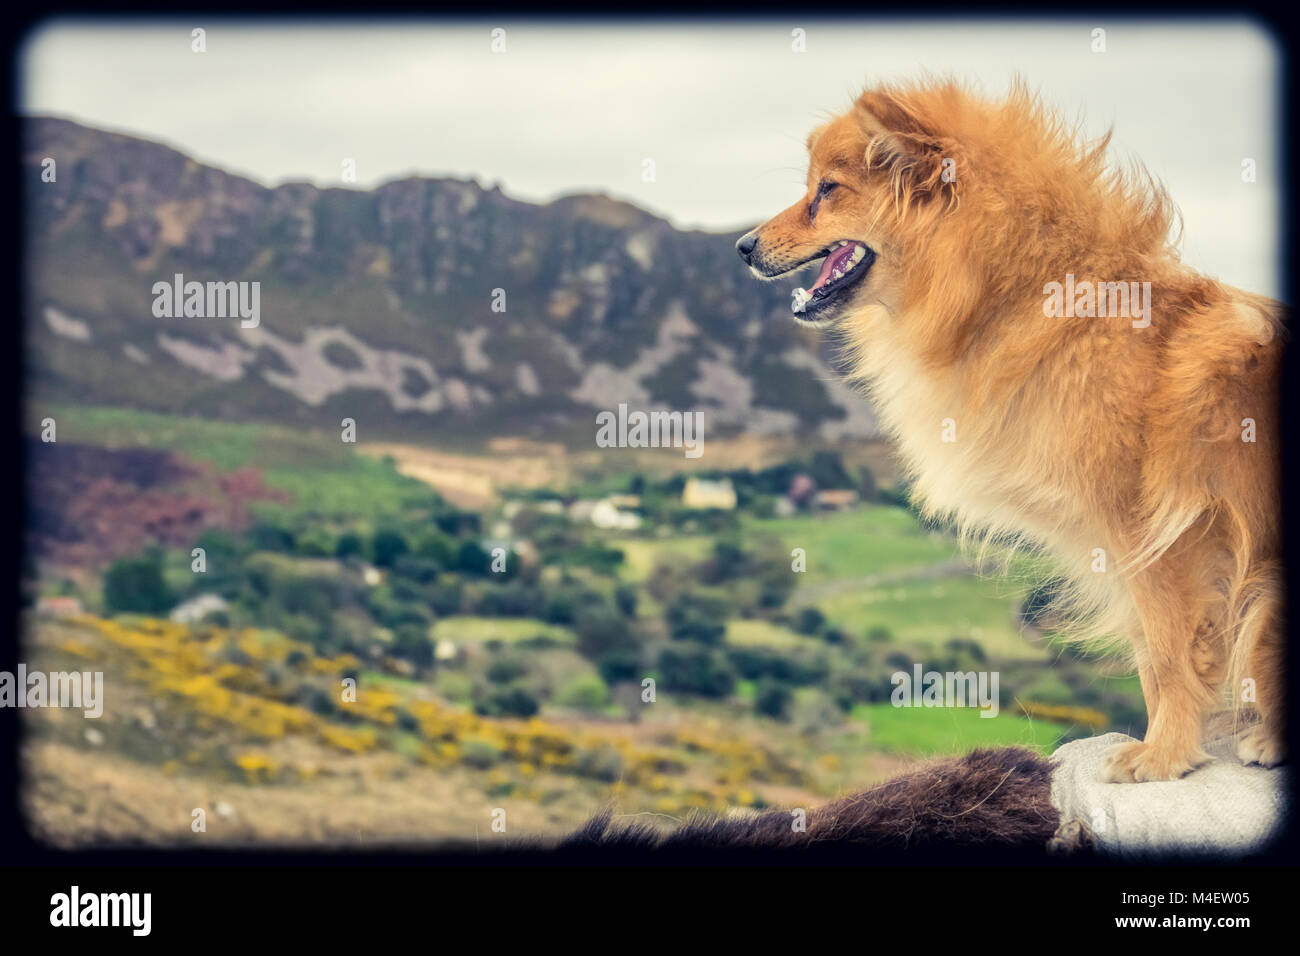 Cute brown dog and rural landscape - Stock Image